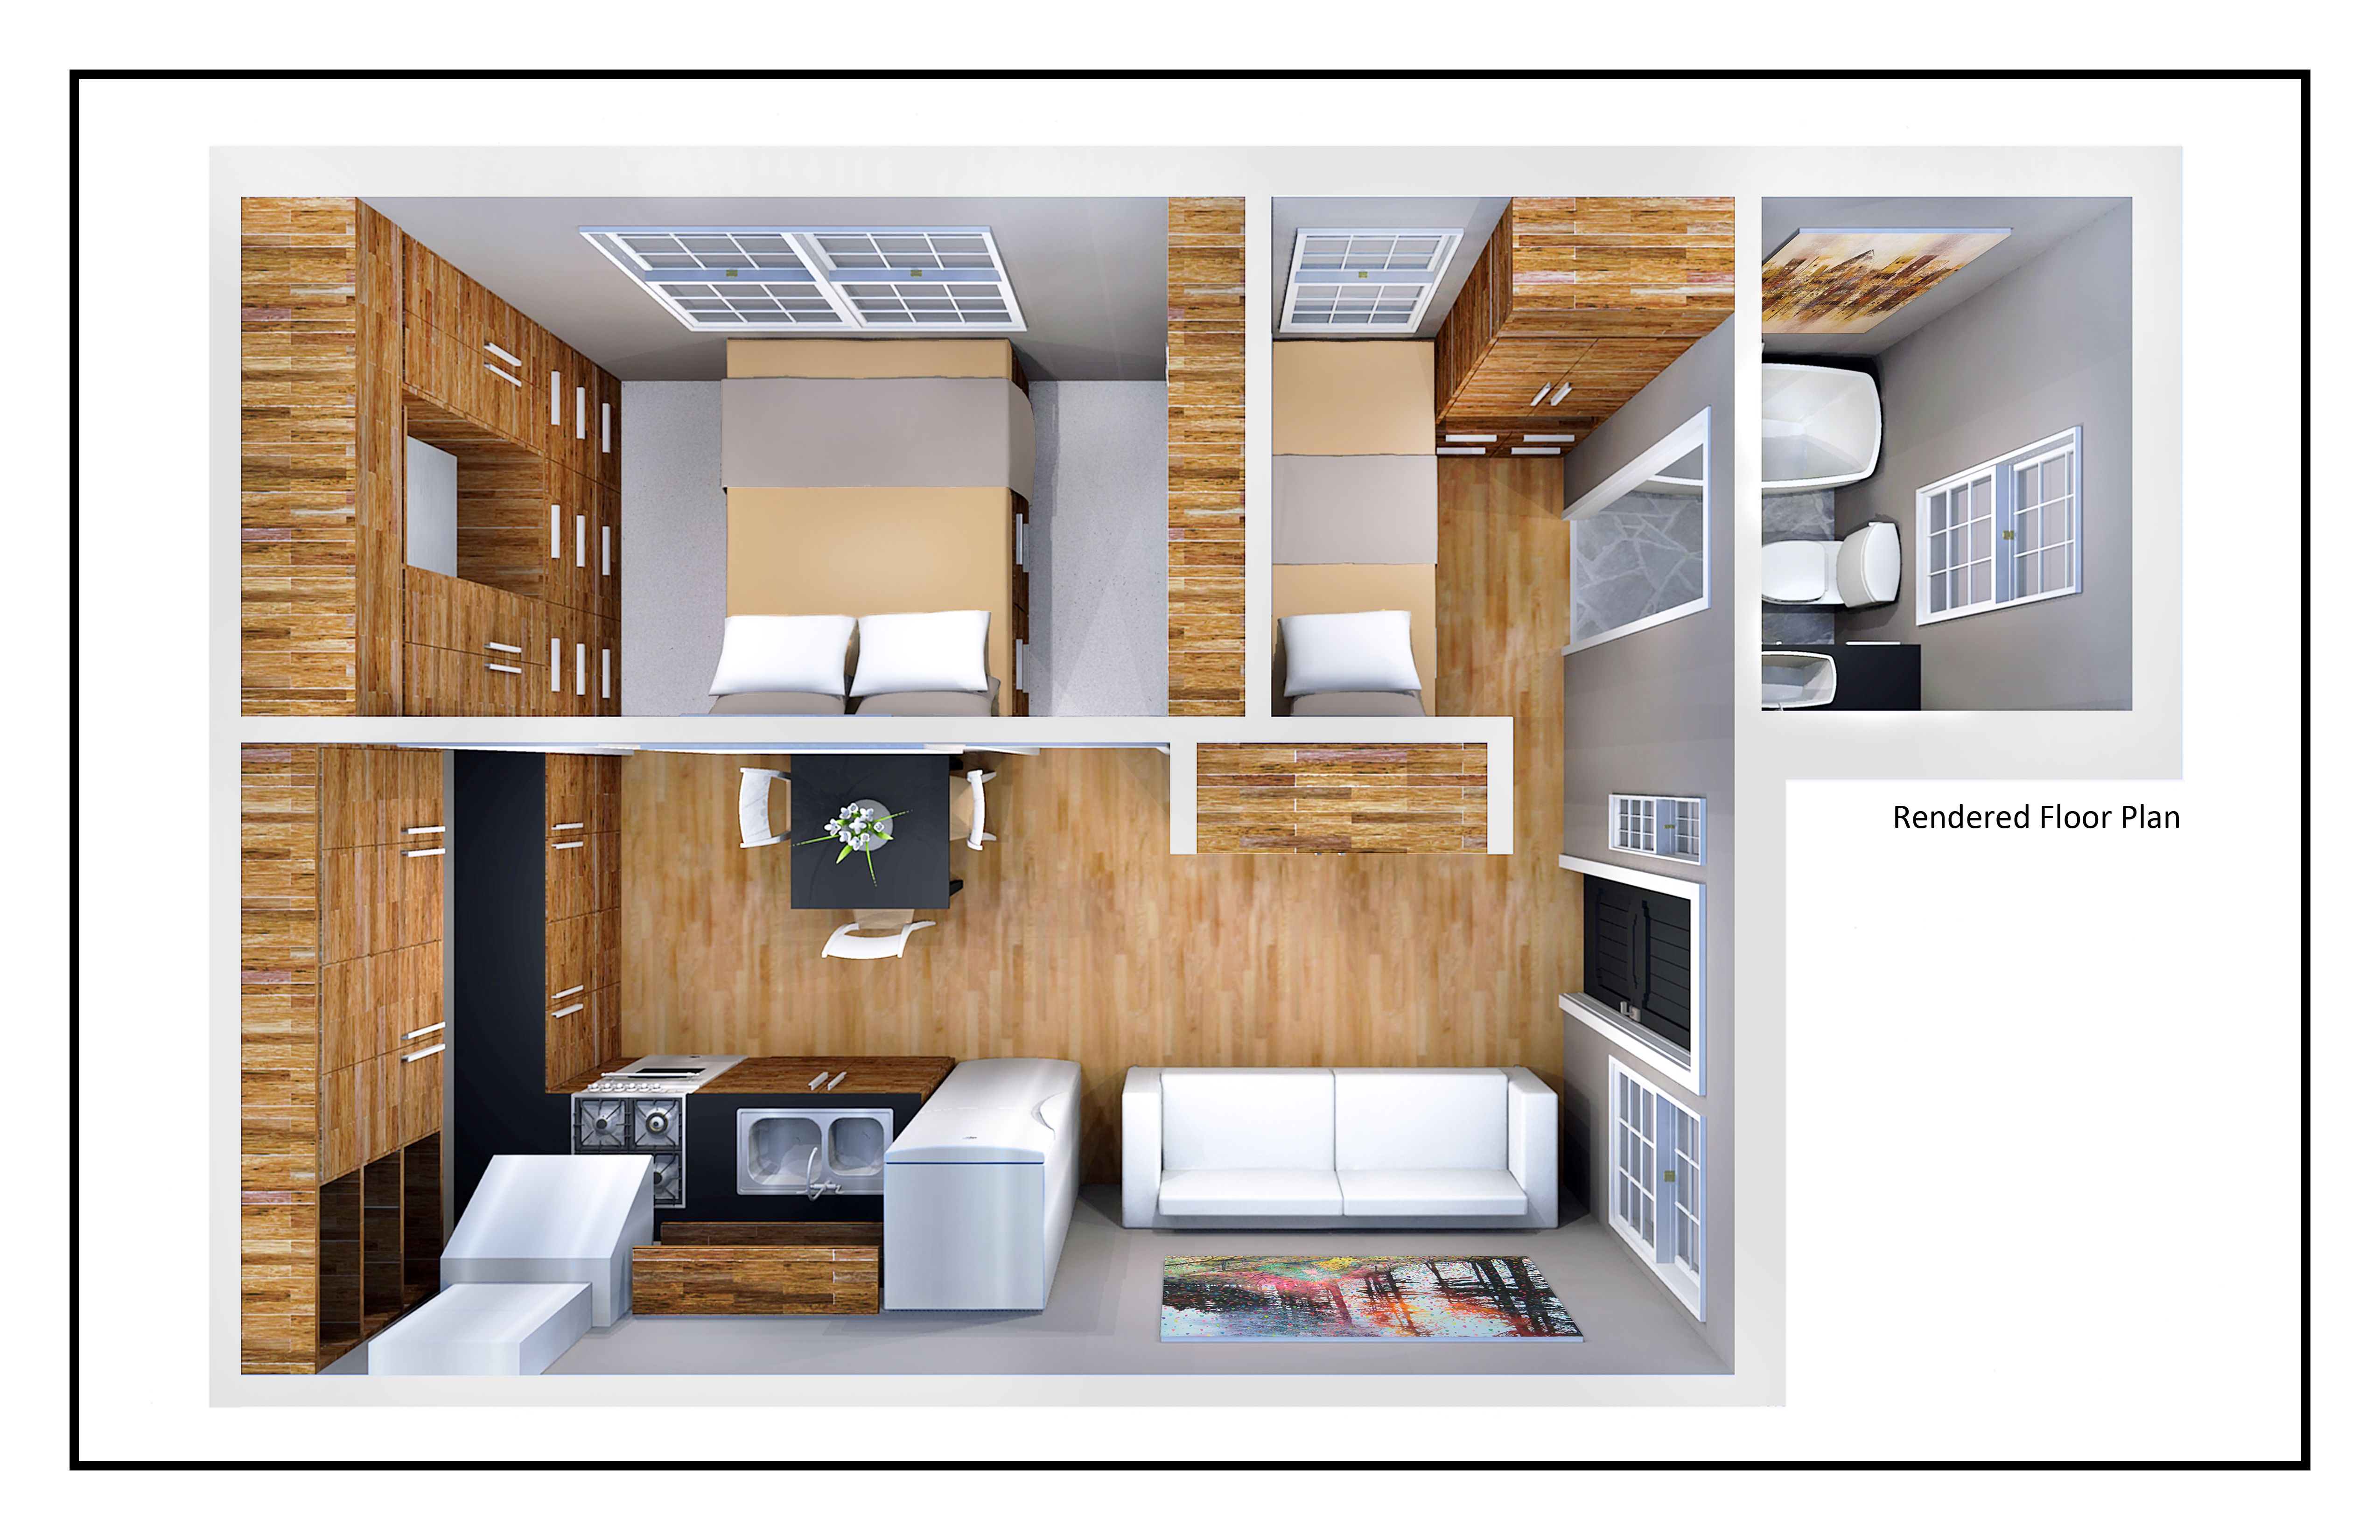 400 Square Foot House By Jordan Parke At Coroflot Com Studio Apartment Floor Plans Small House Kits Small House Plans